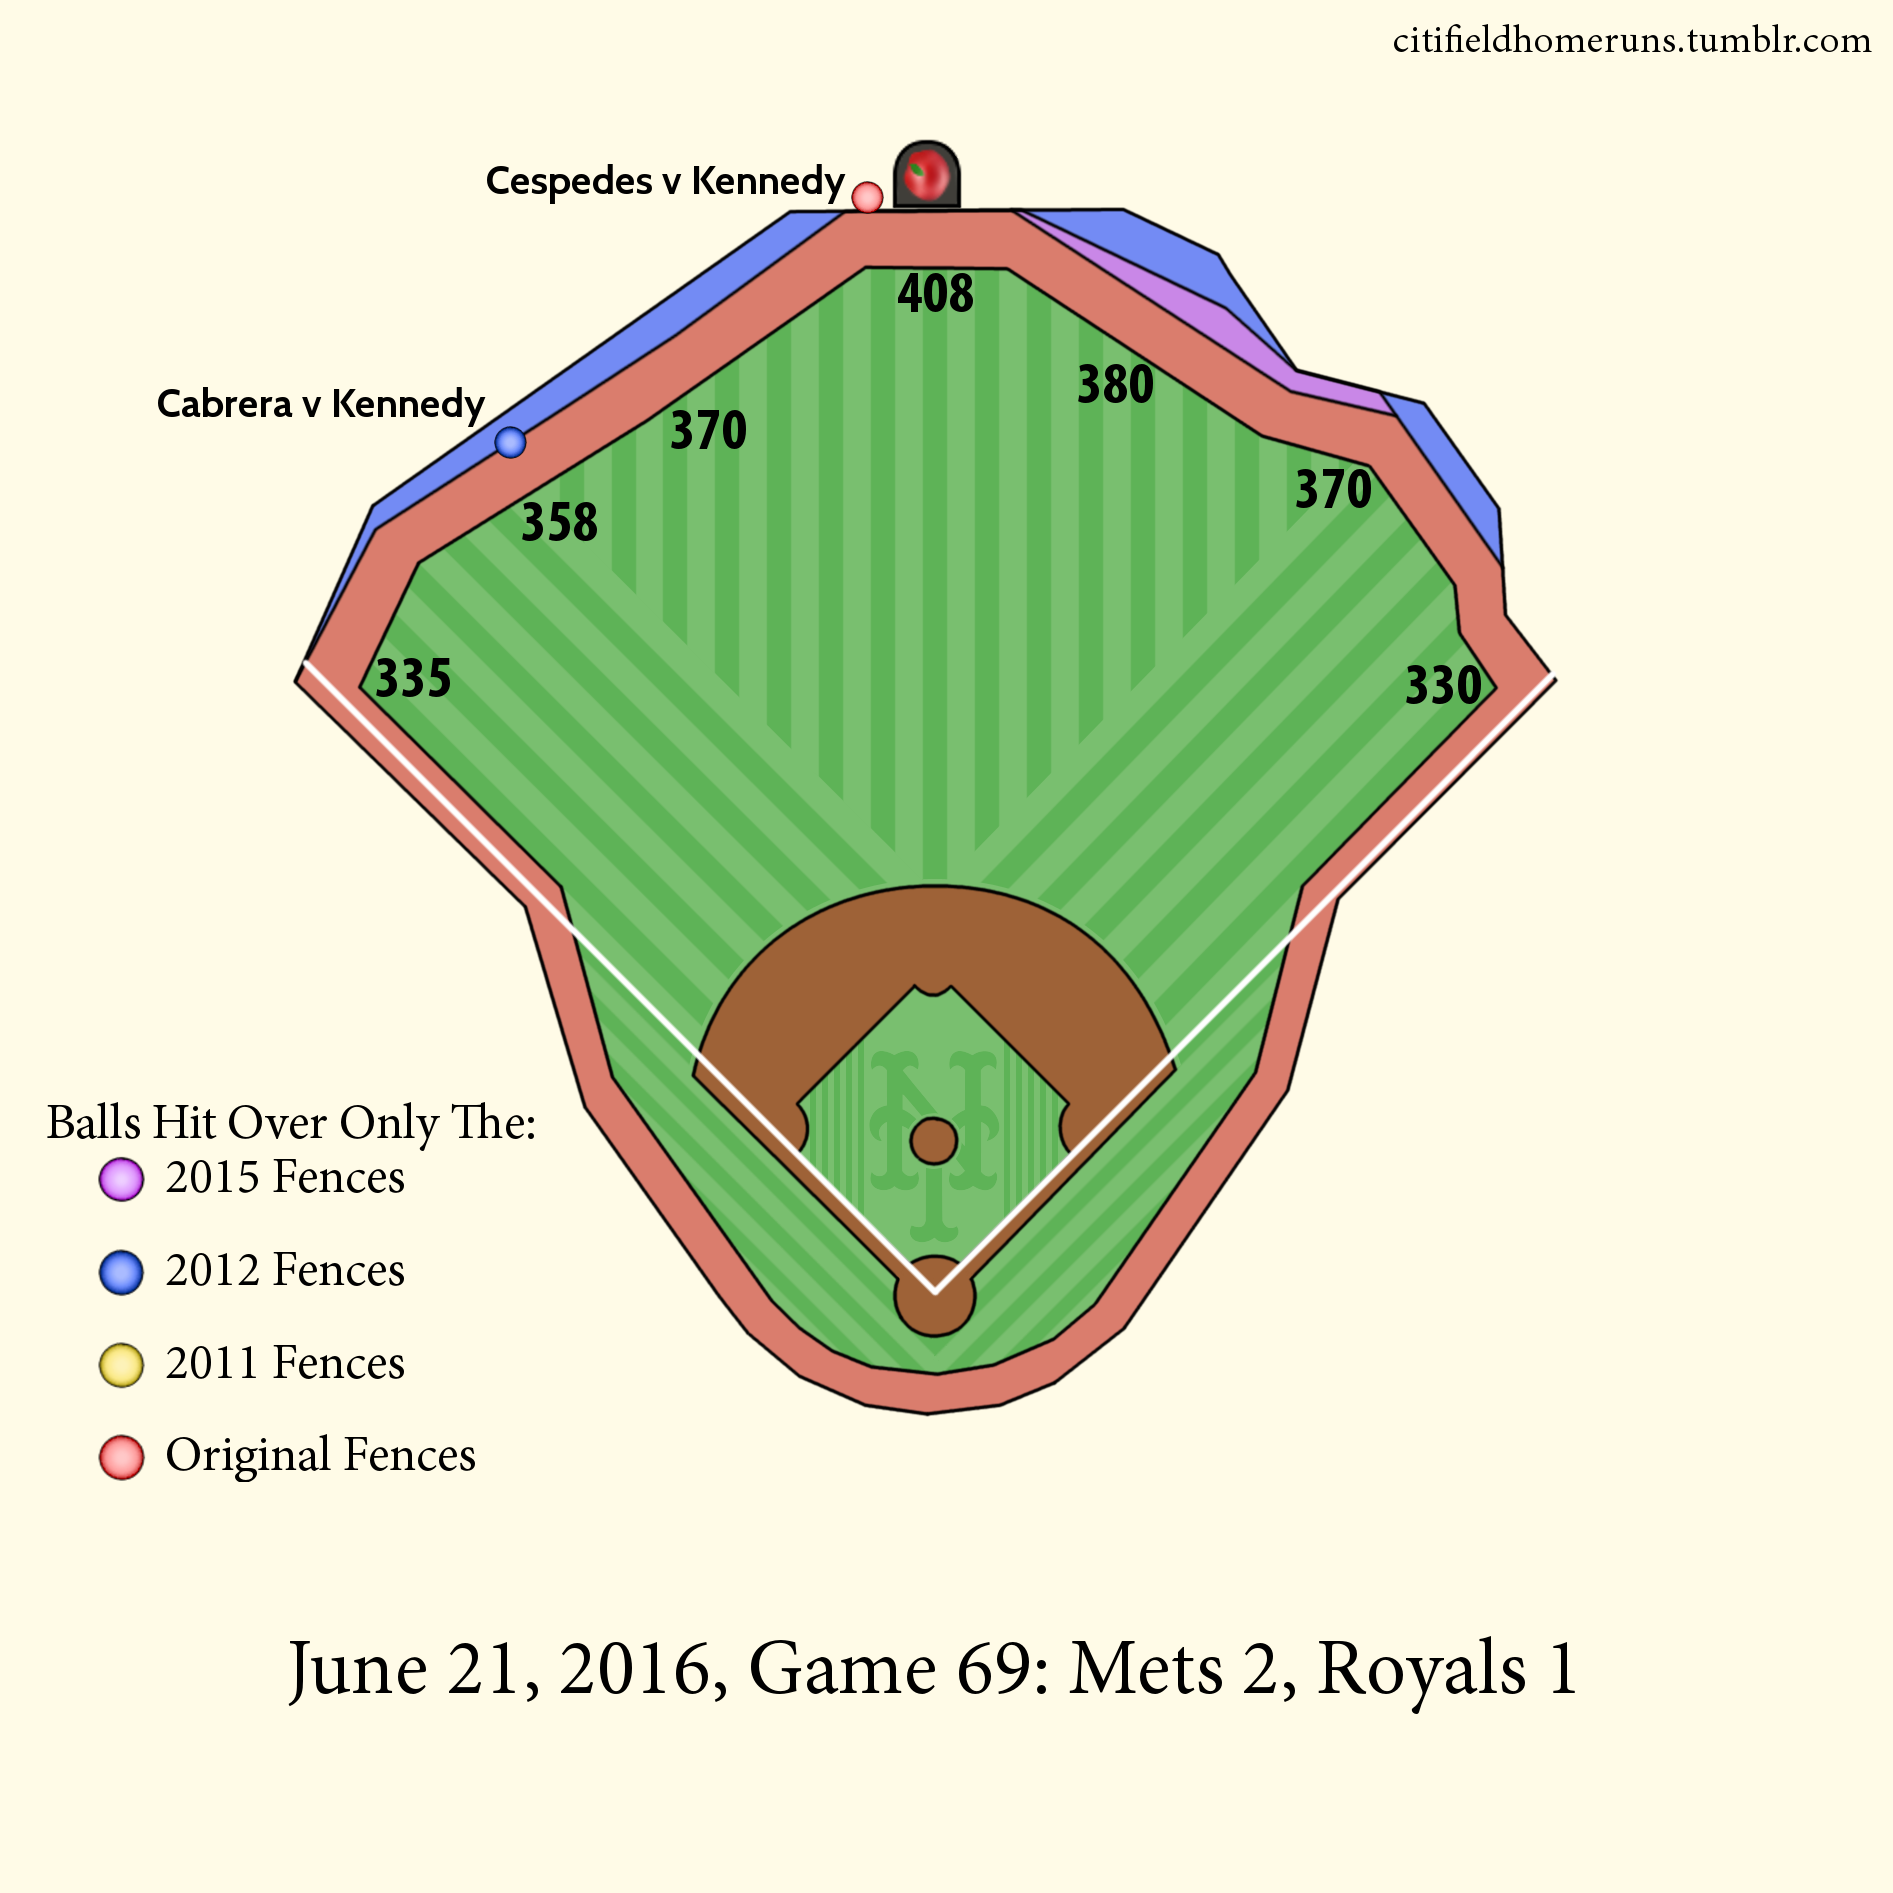 67. Cabrera v Kennedy: 1 Out, 1-1 Knuckle Curve. 68. Cespedes v Kennedy: 0 Outs, 1-0 Four Seamer.